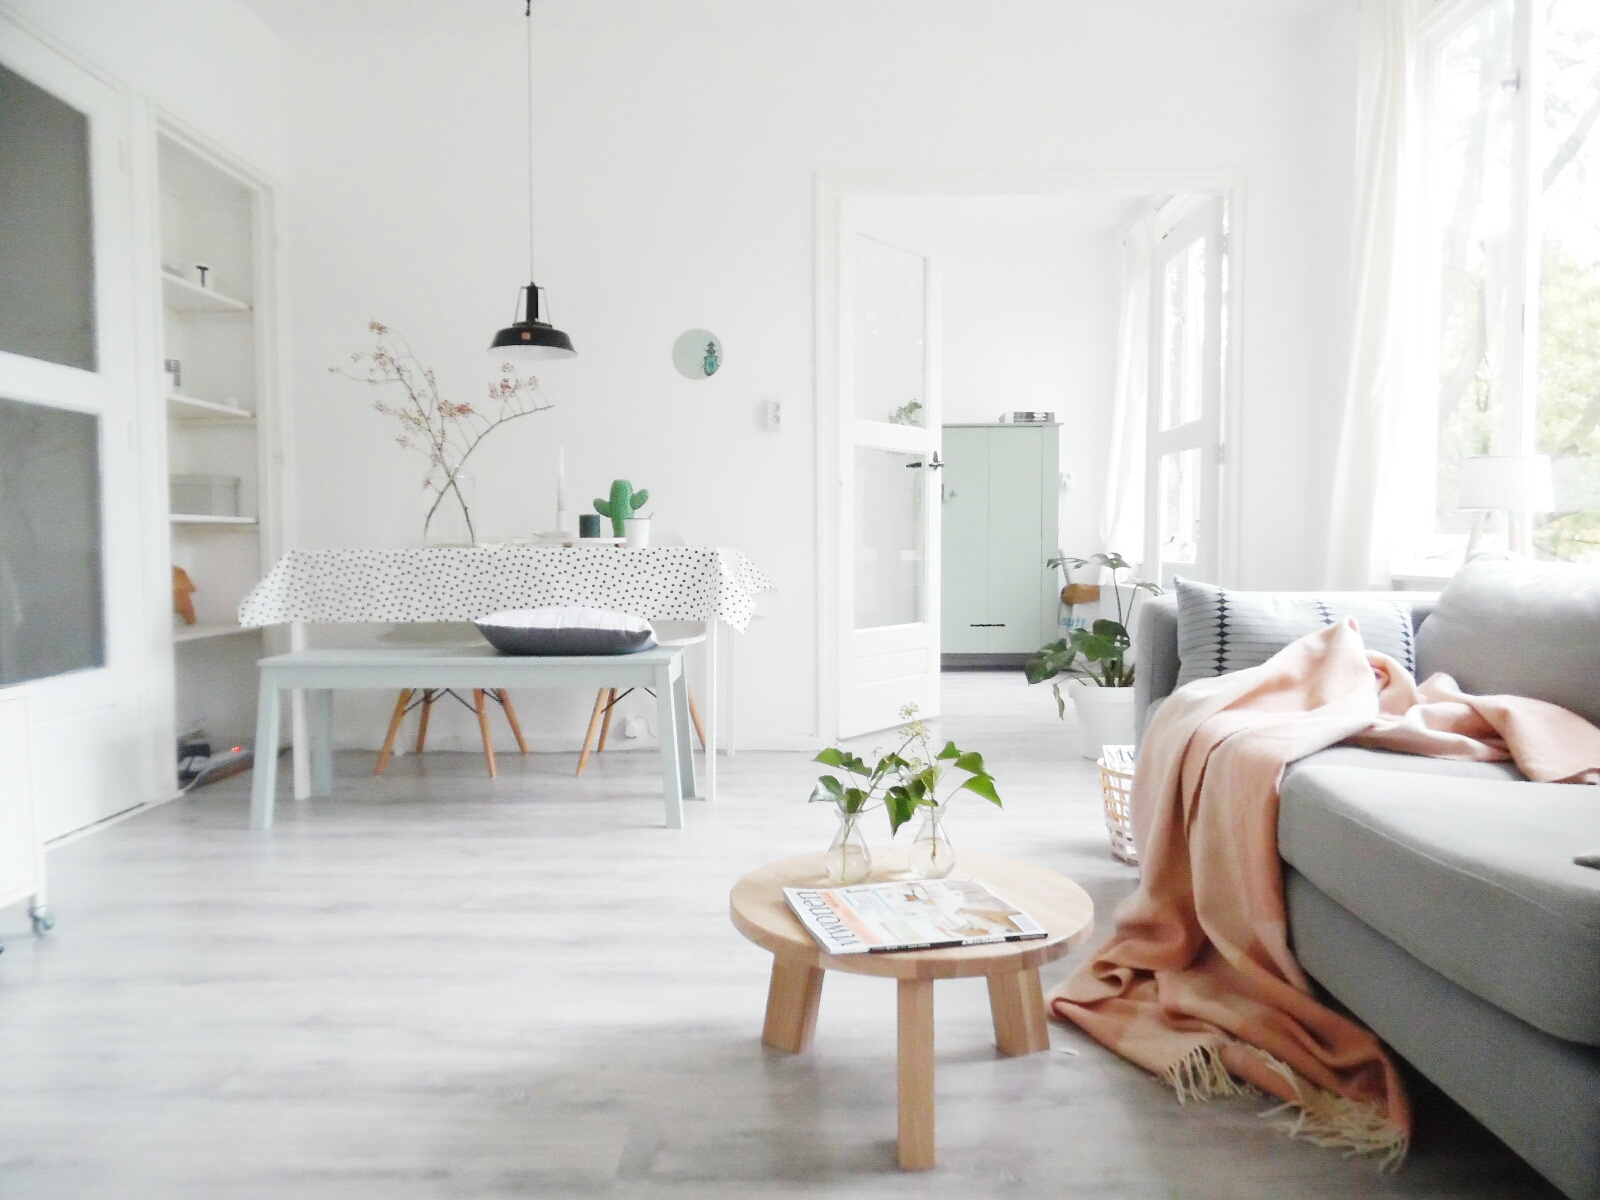 bloggers@home | lilaliv, Schlafzimmer entwurf